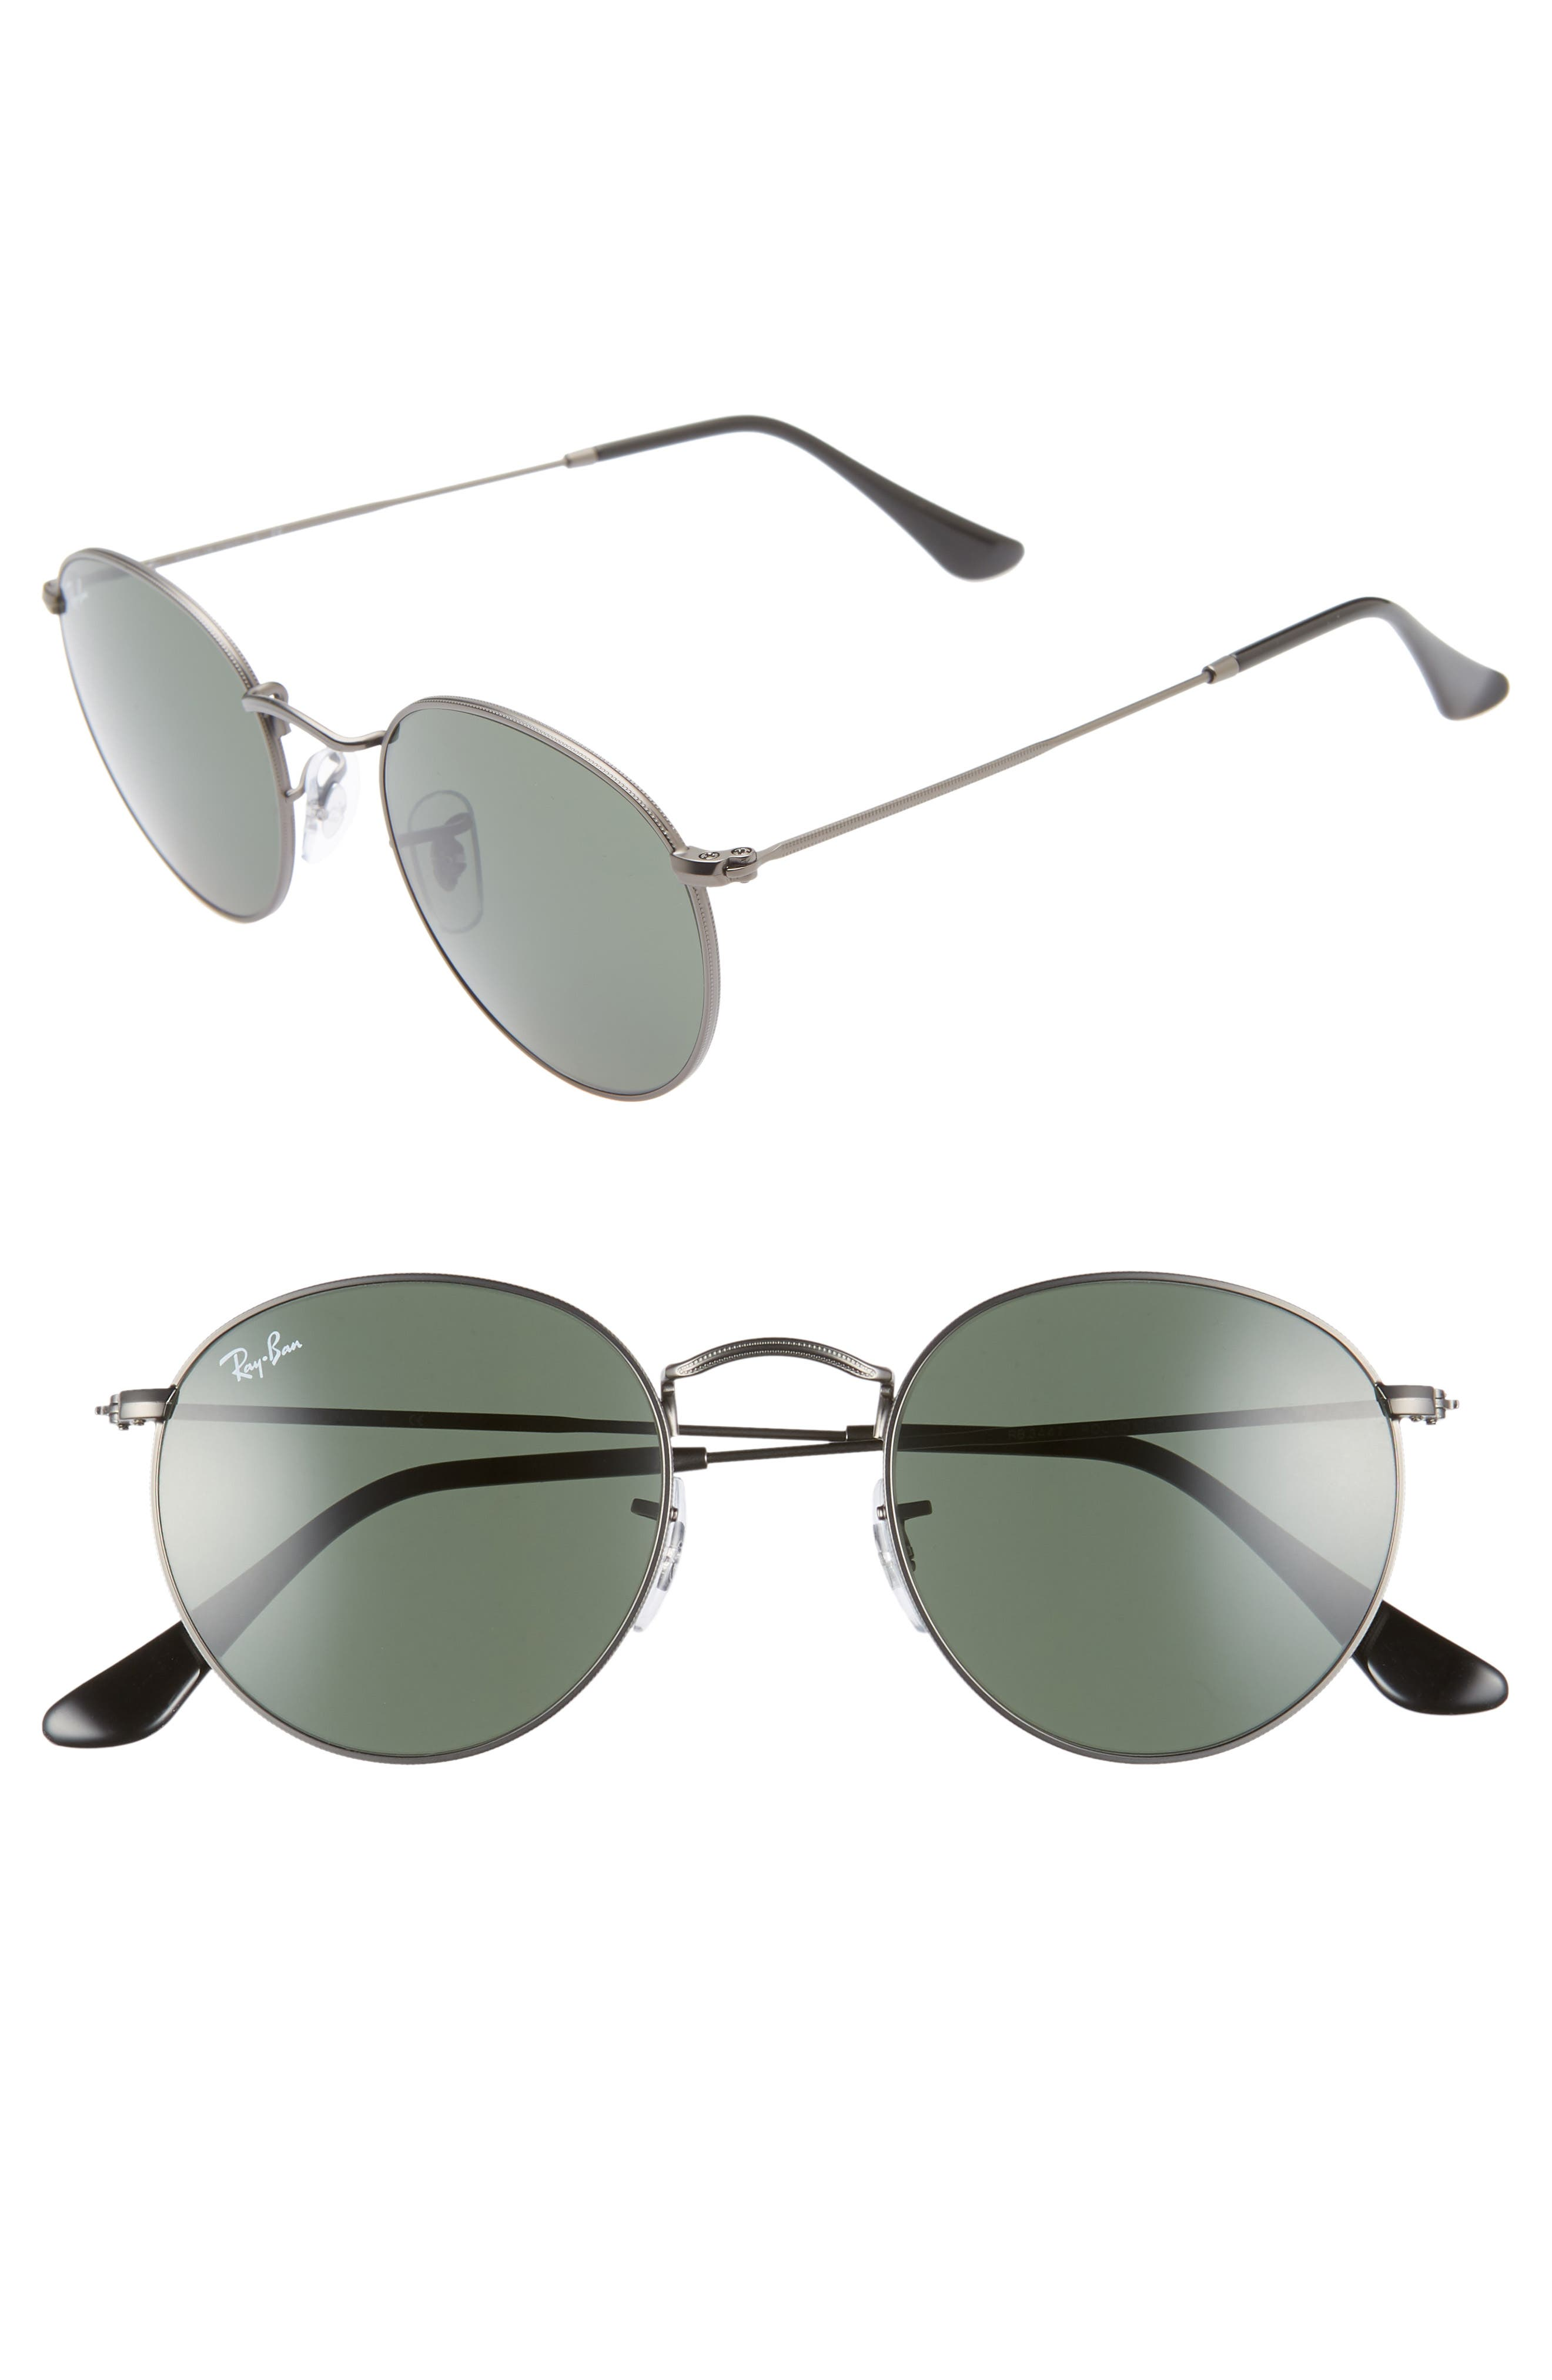 Icons 50mm Round Metal Sunglasses,                             Main thumbnail 1, color,                             GUNMETAL/ GREEN SOLID